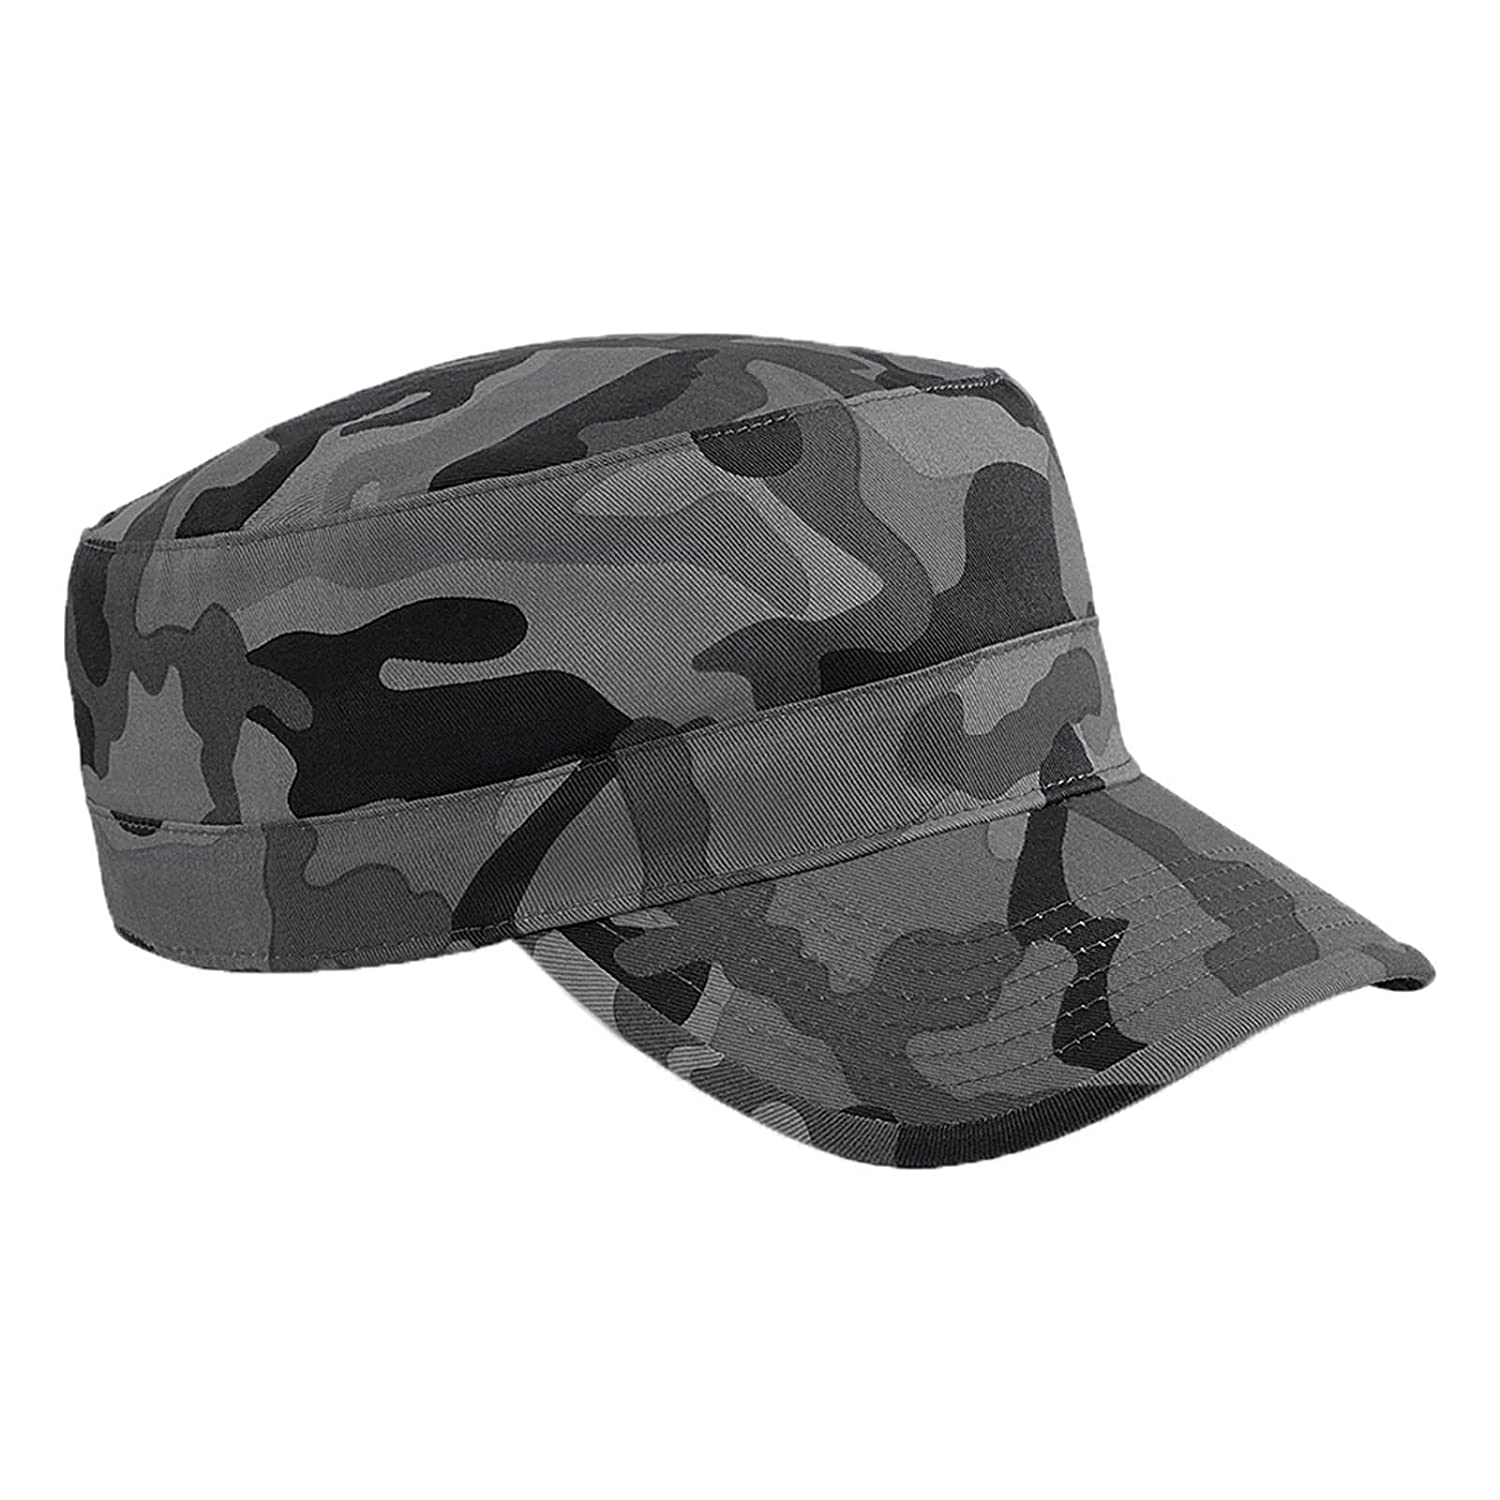 1667efac7 Bchfld Camouflage Army Cap Cotton Camo Hat Urban Military Field Jungle One  Size